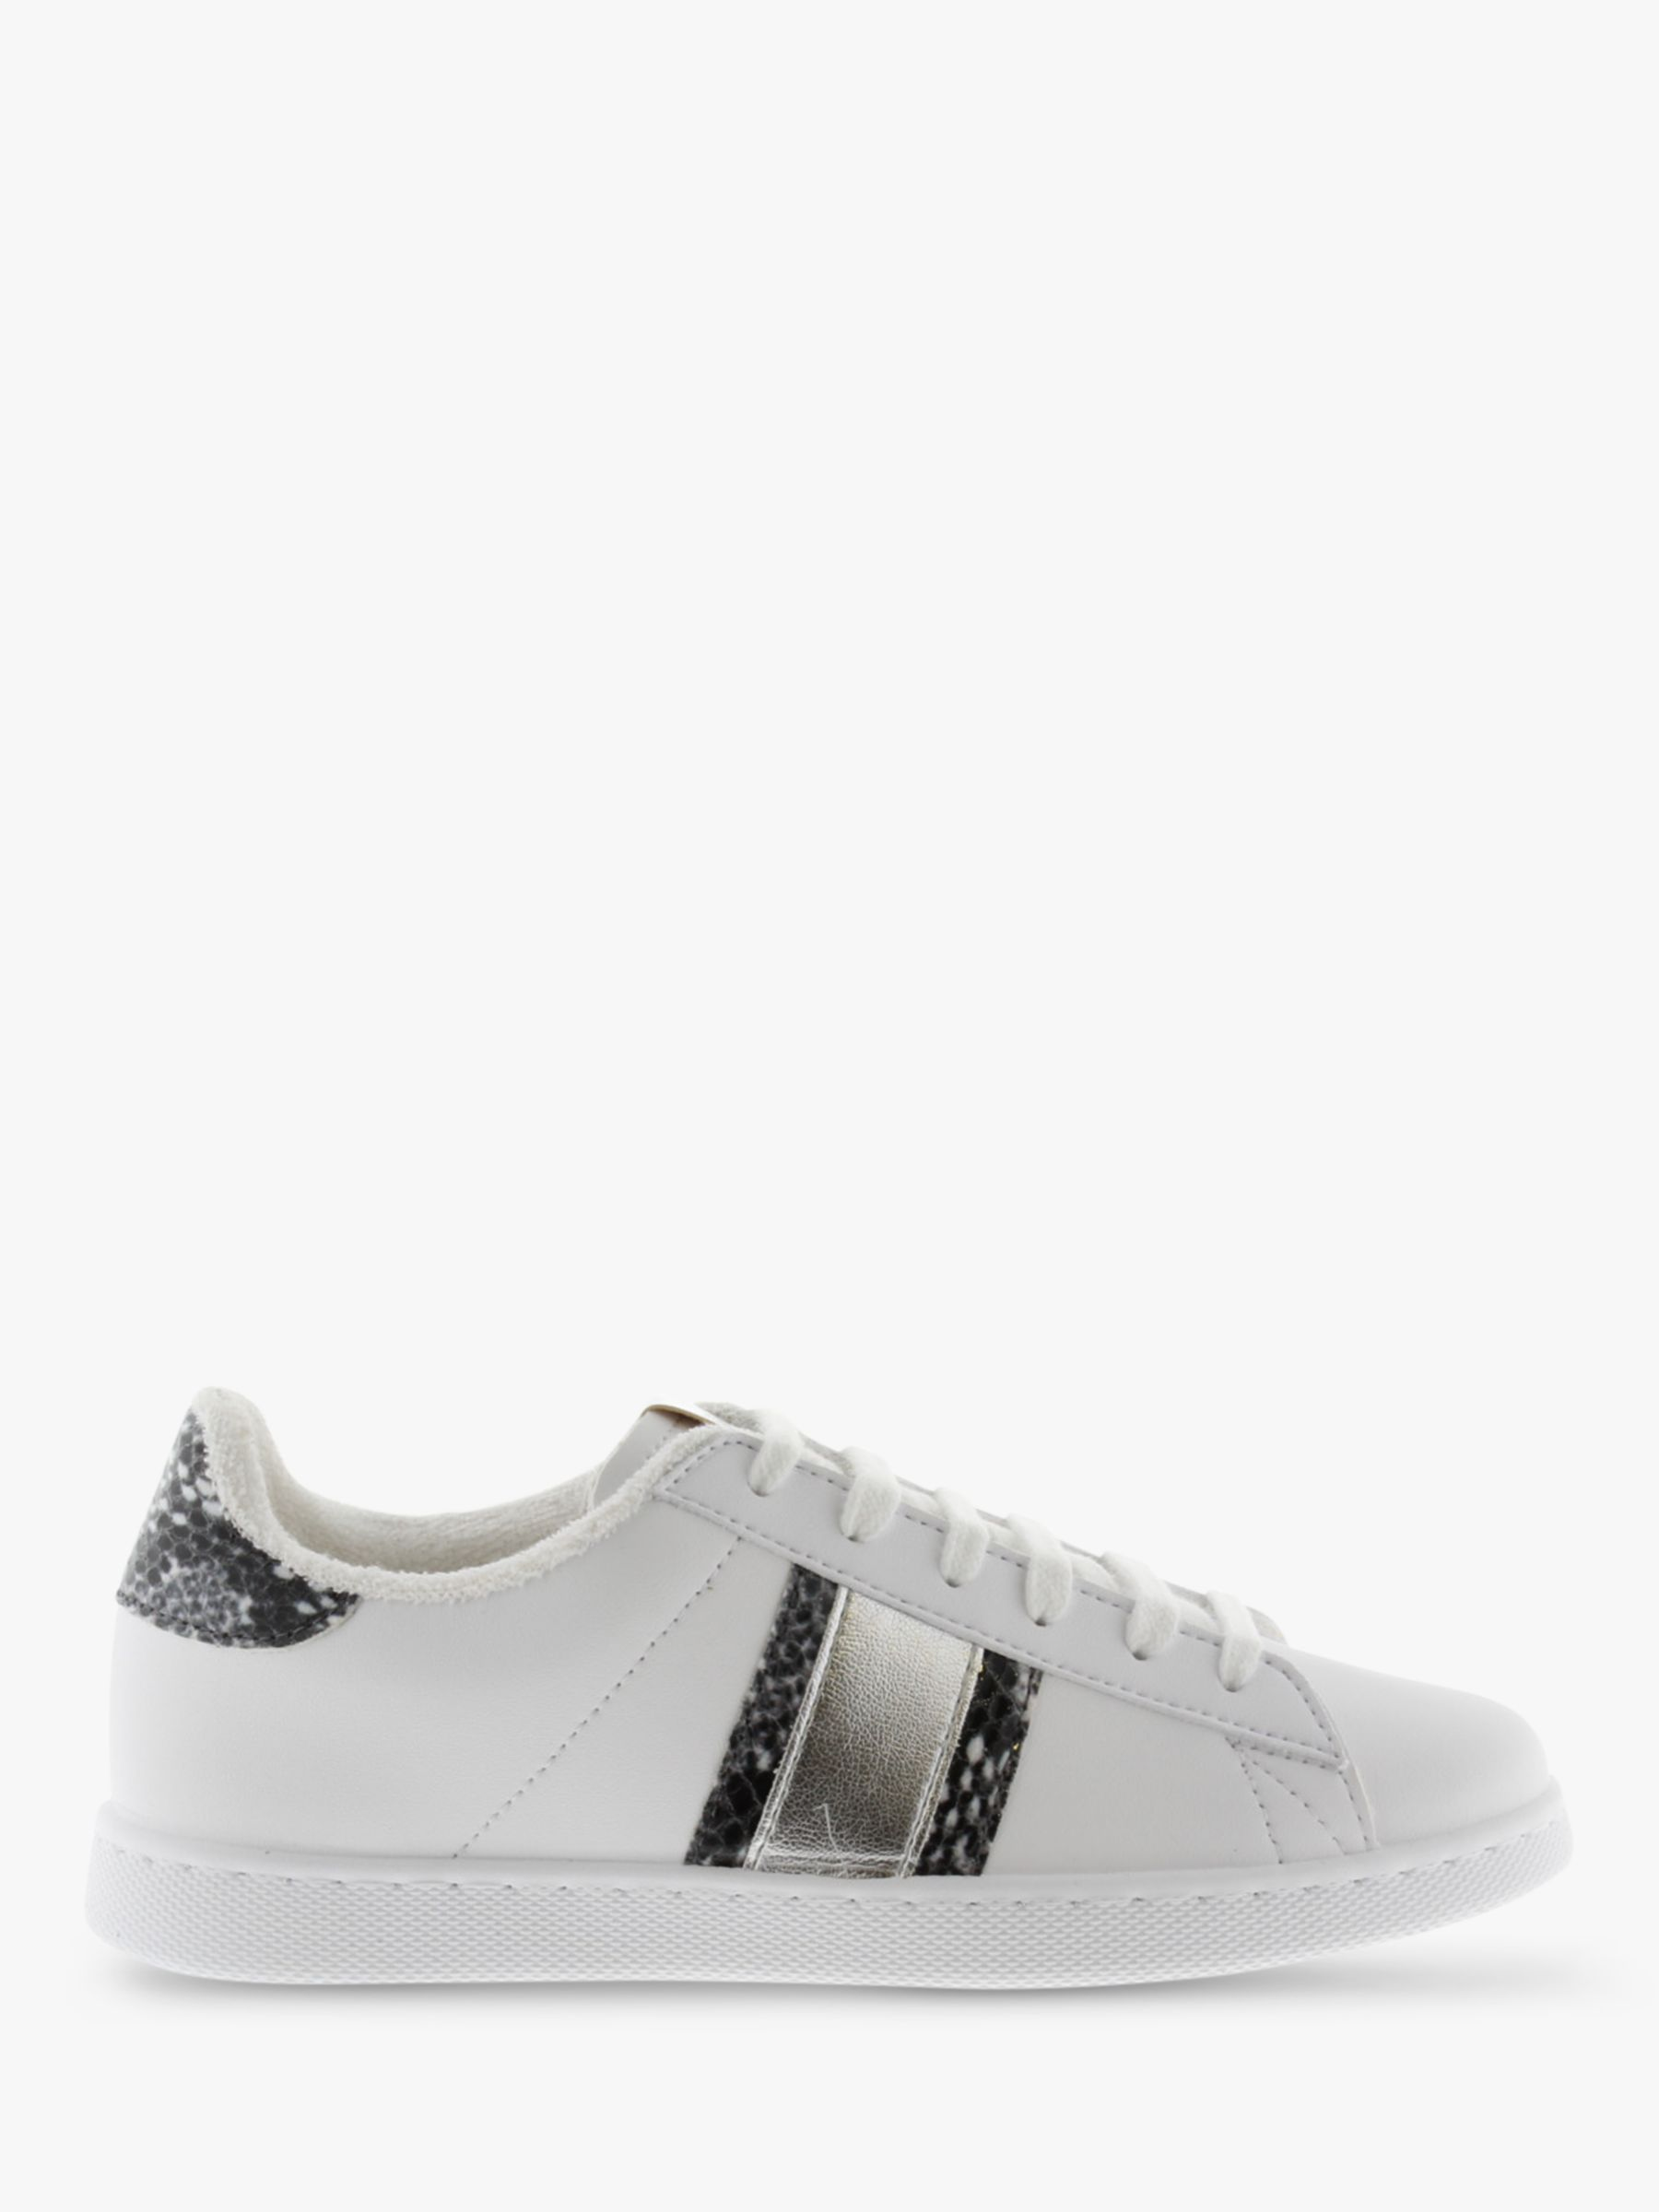 Victoria Shoes Victoria Shoes Tenis Banda Trainers, White/Snakeprint